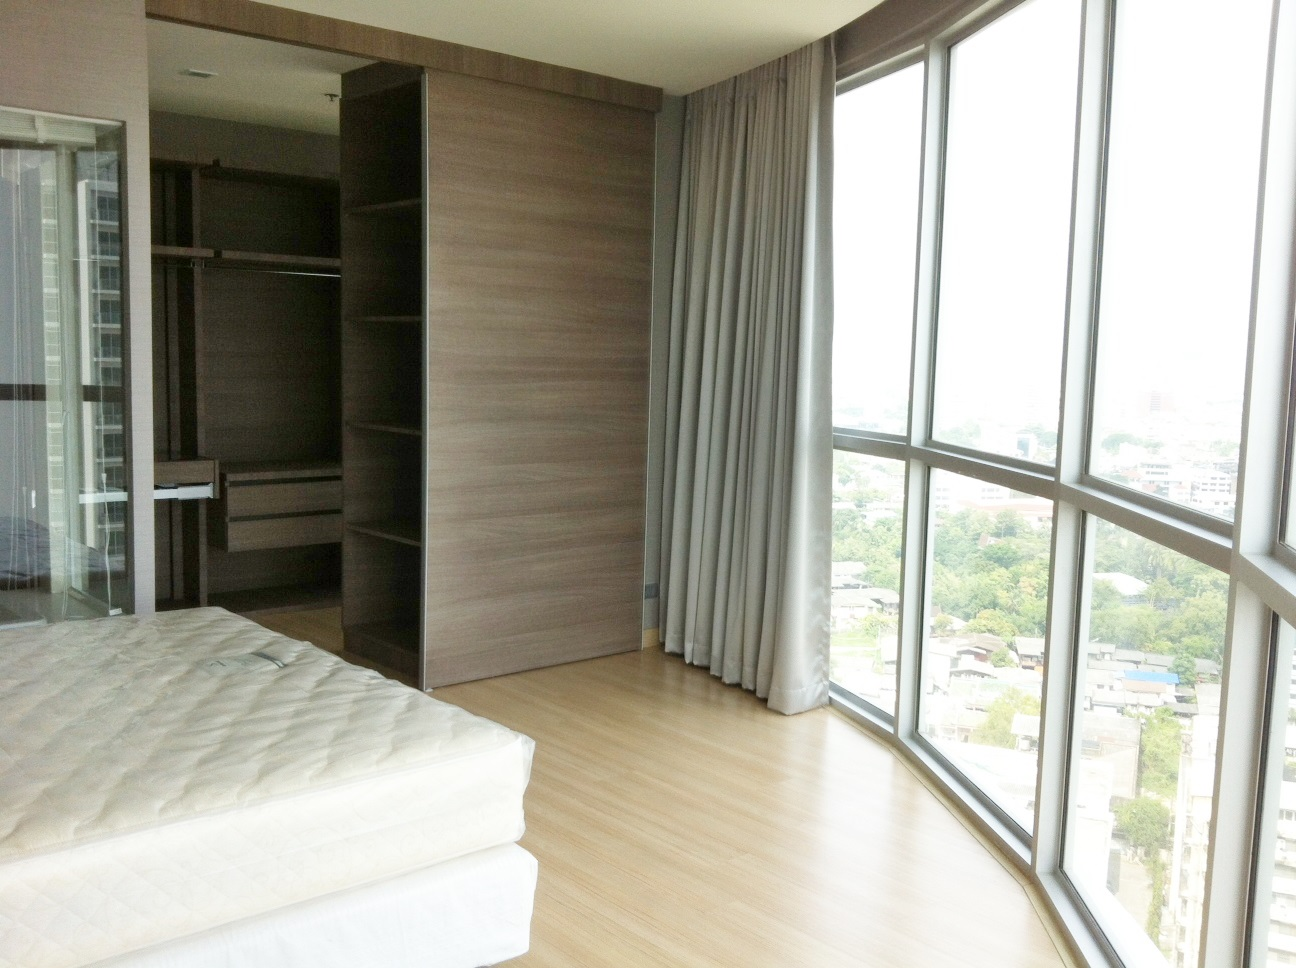 RE/MAX Properties Agency's RENT 1 Bedroom 52 Sq.m at Sky Walk condominium 5